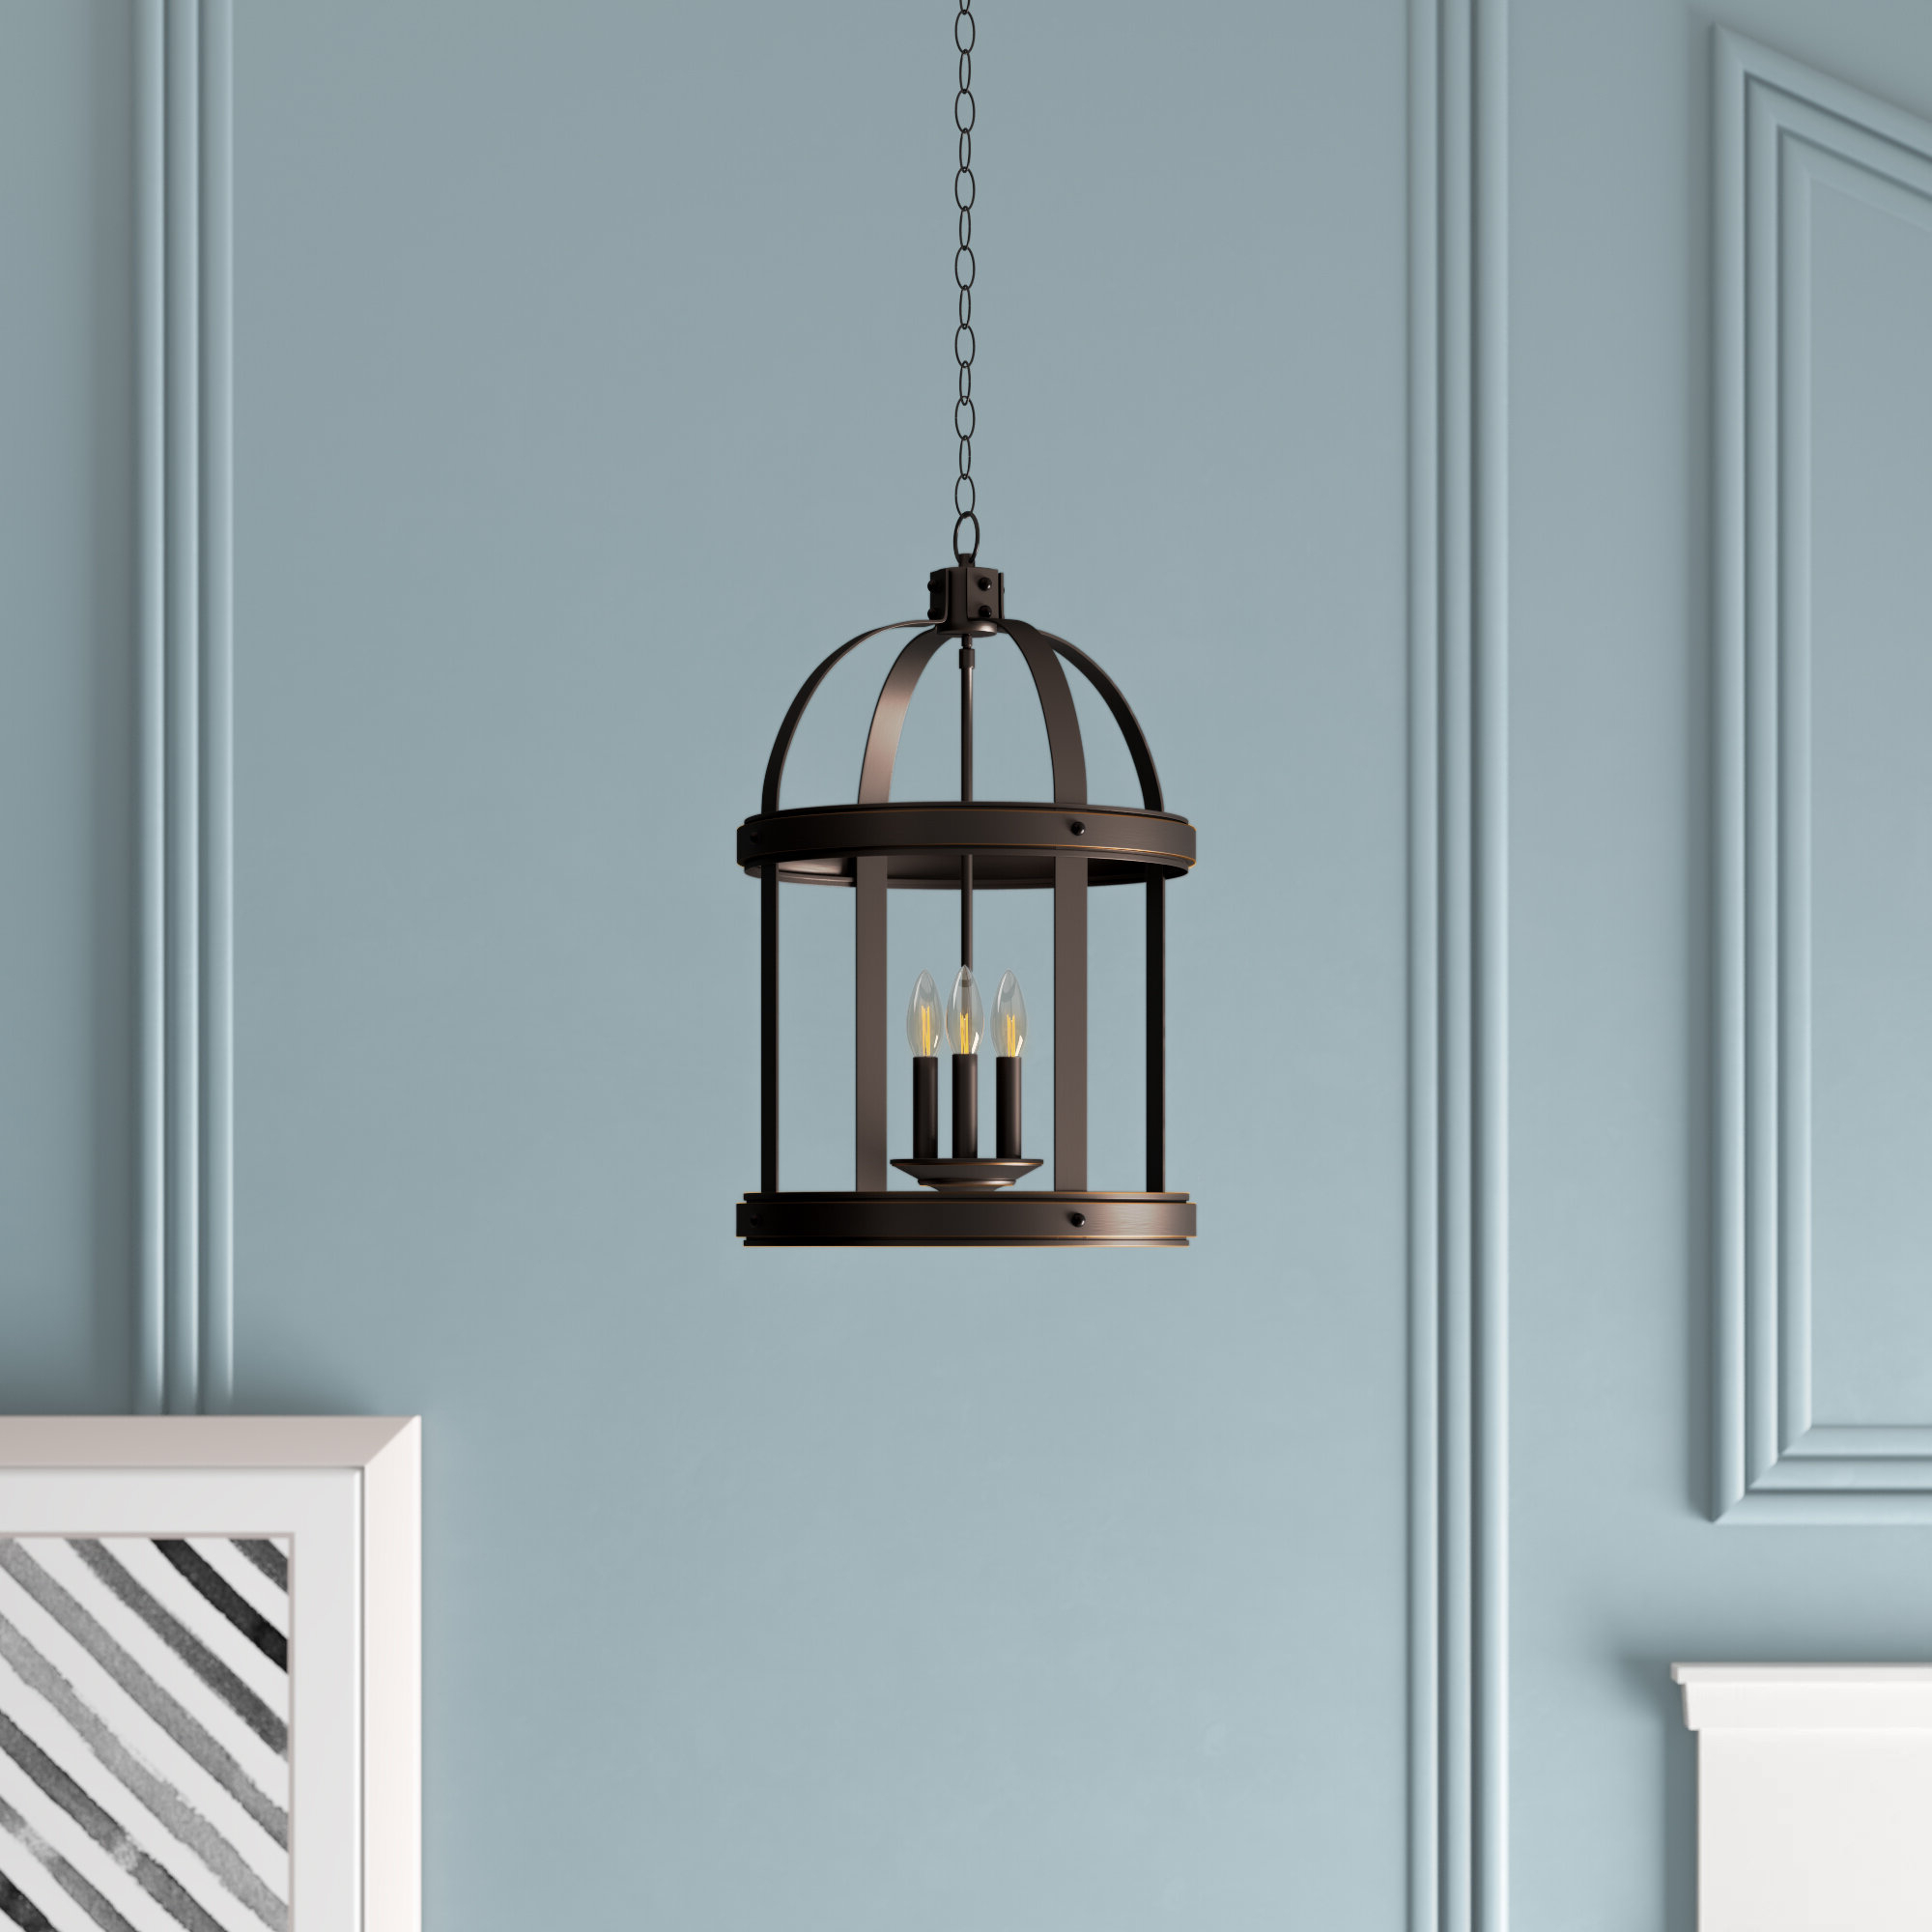 Chauvin 3 Light Lantern Geometric Pendants Throughout Most Up To Date Pawling 3 Light Lantern Cylinder Pendant (View 9 of 25)